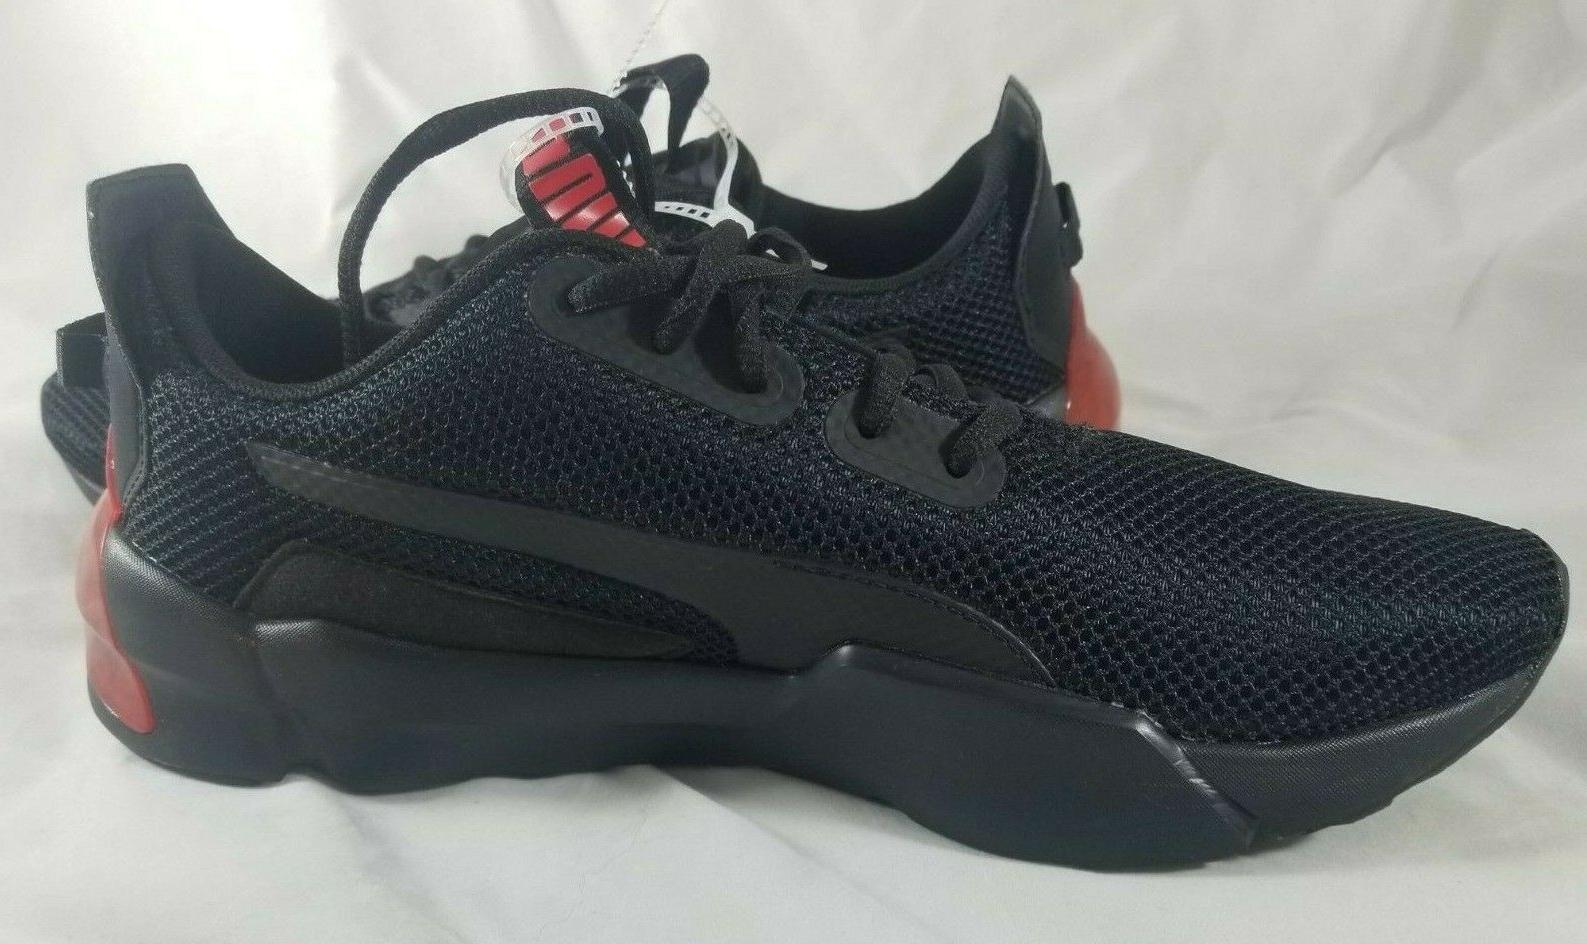 NEW Phase Men's Sneakers Black Red Sz